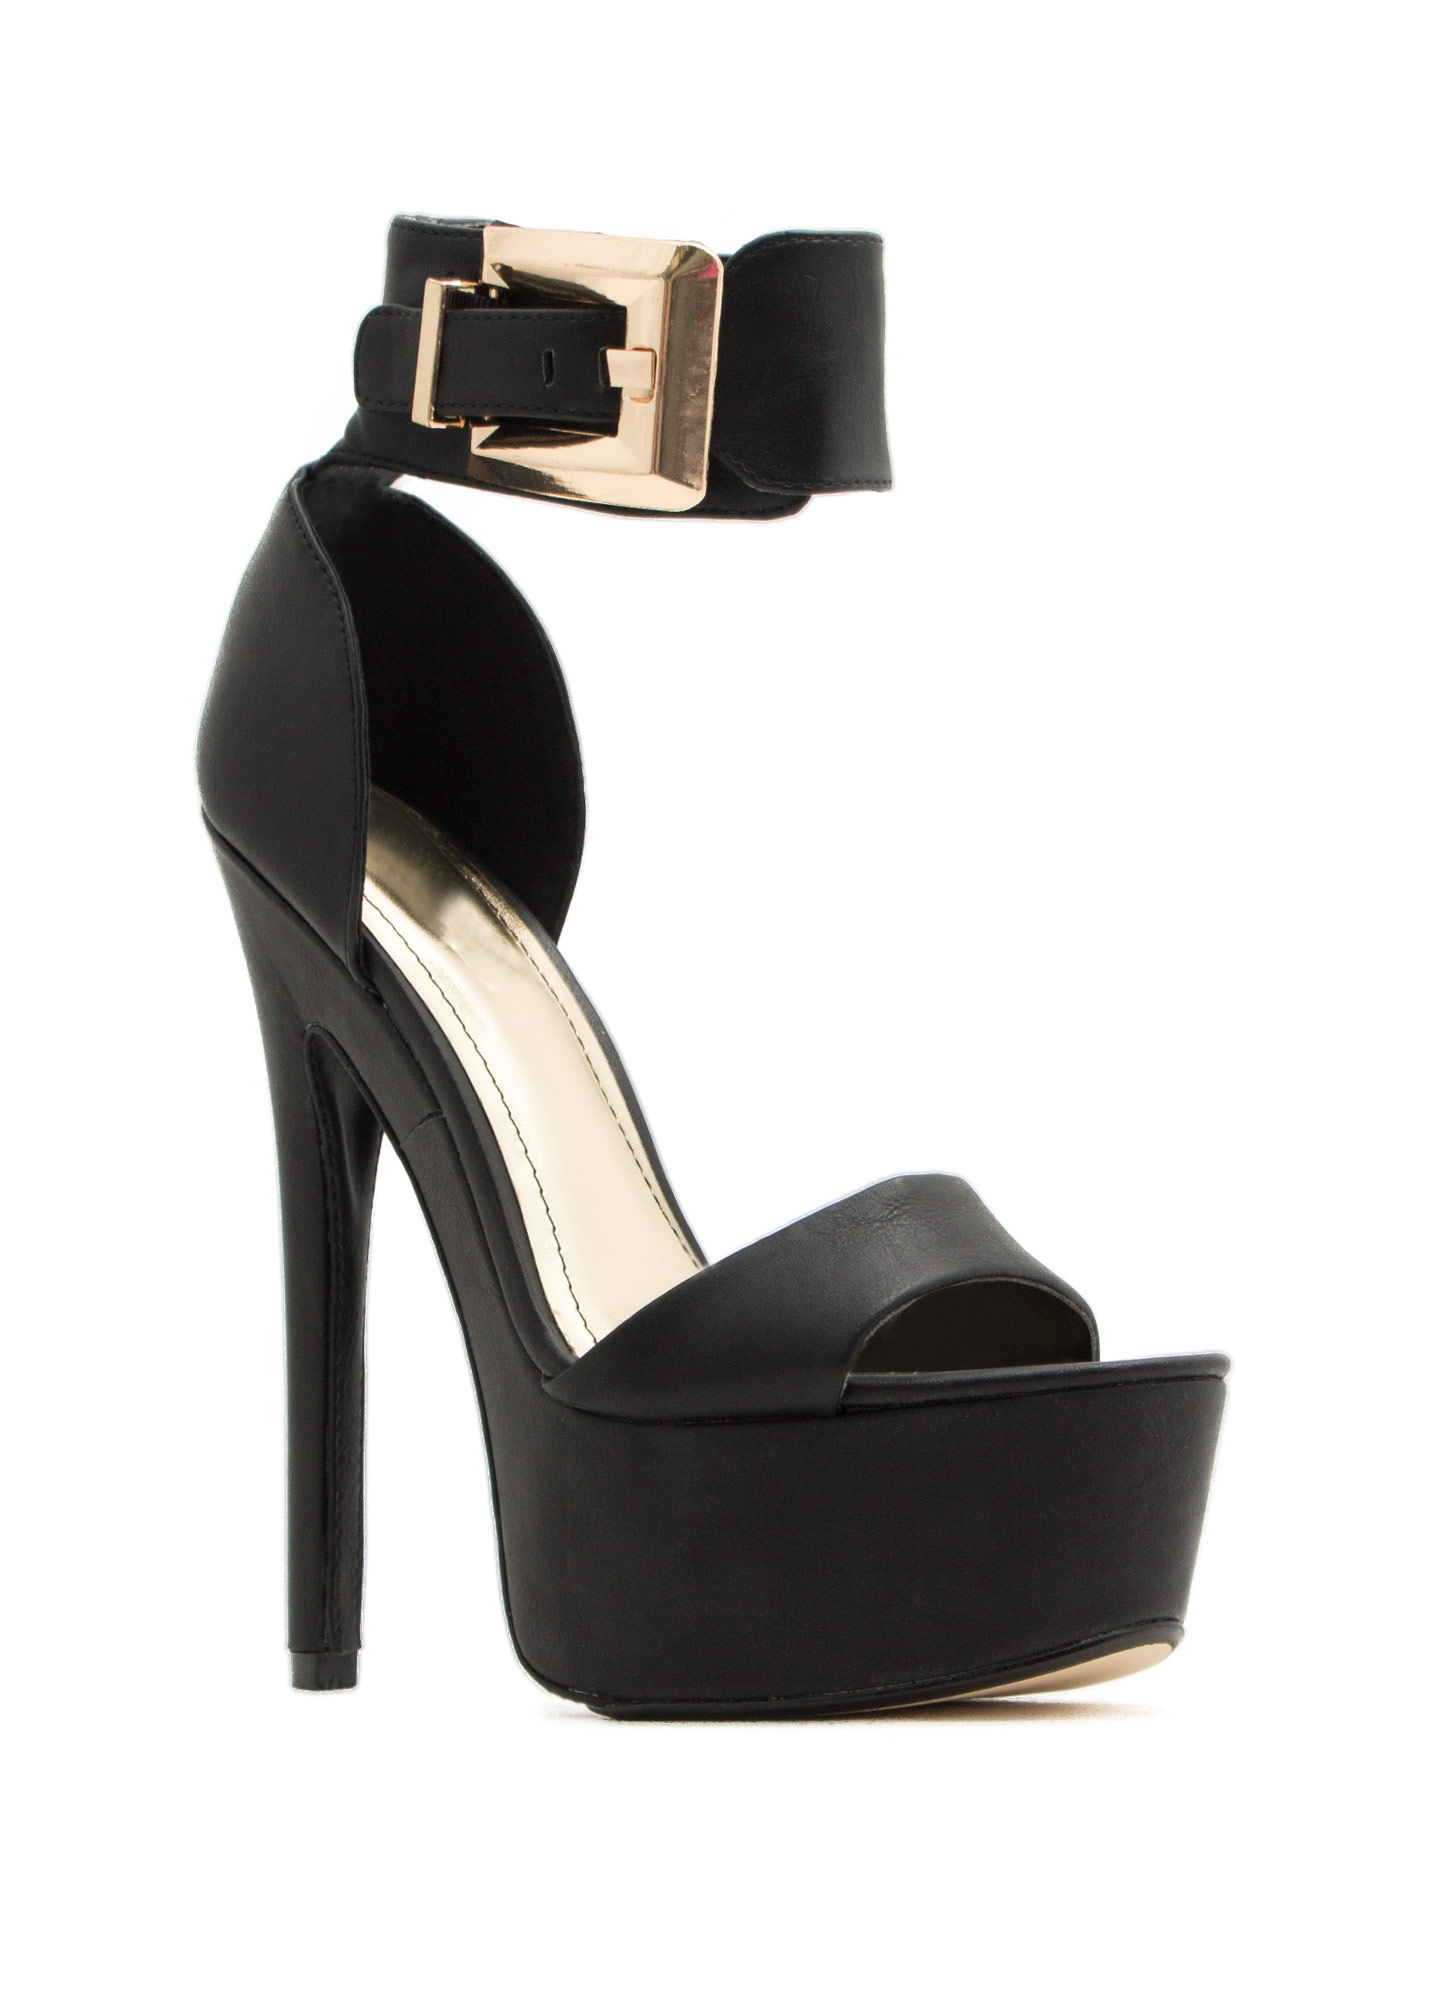 Cuff Luck Big Buckle Platform Heels BLACK